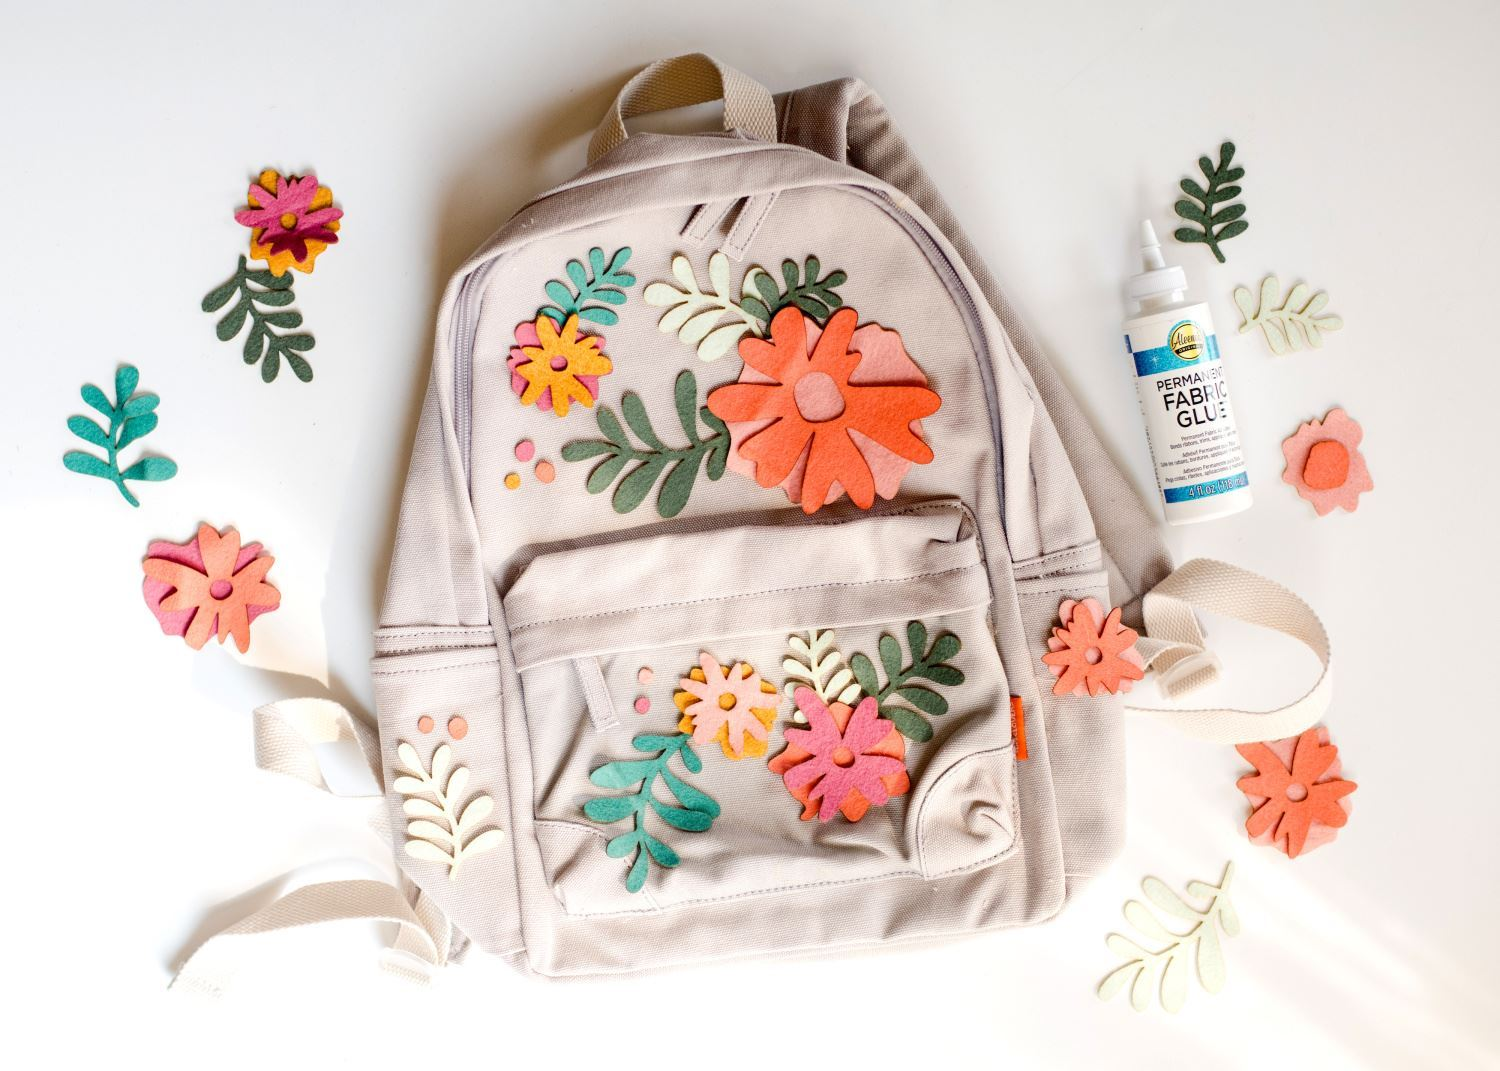 Lay out flowers on backpack